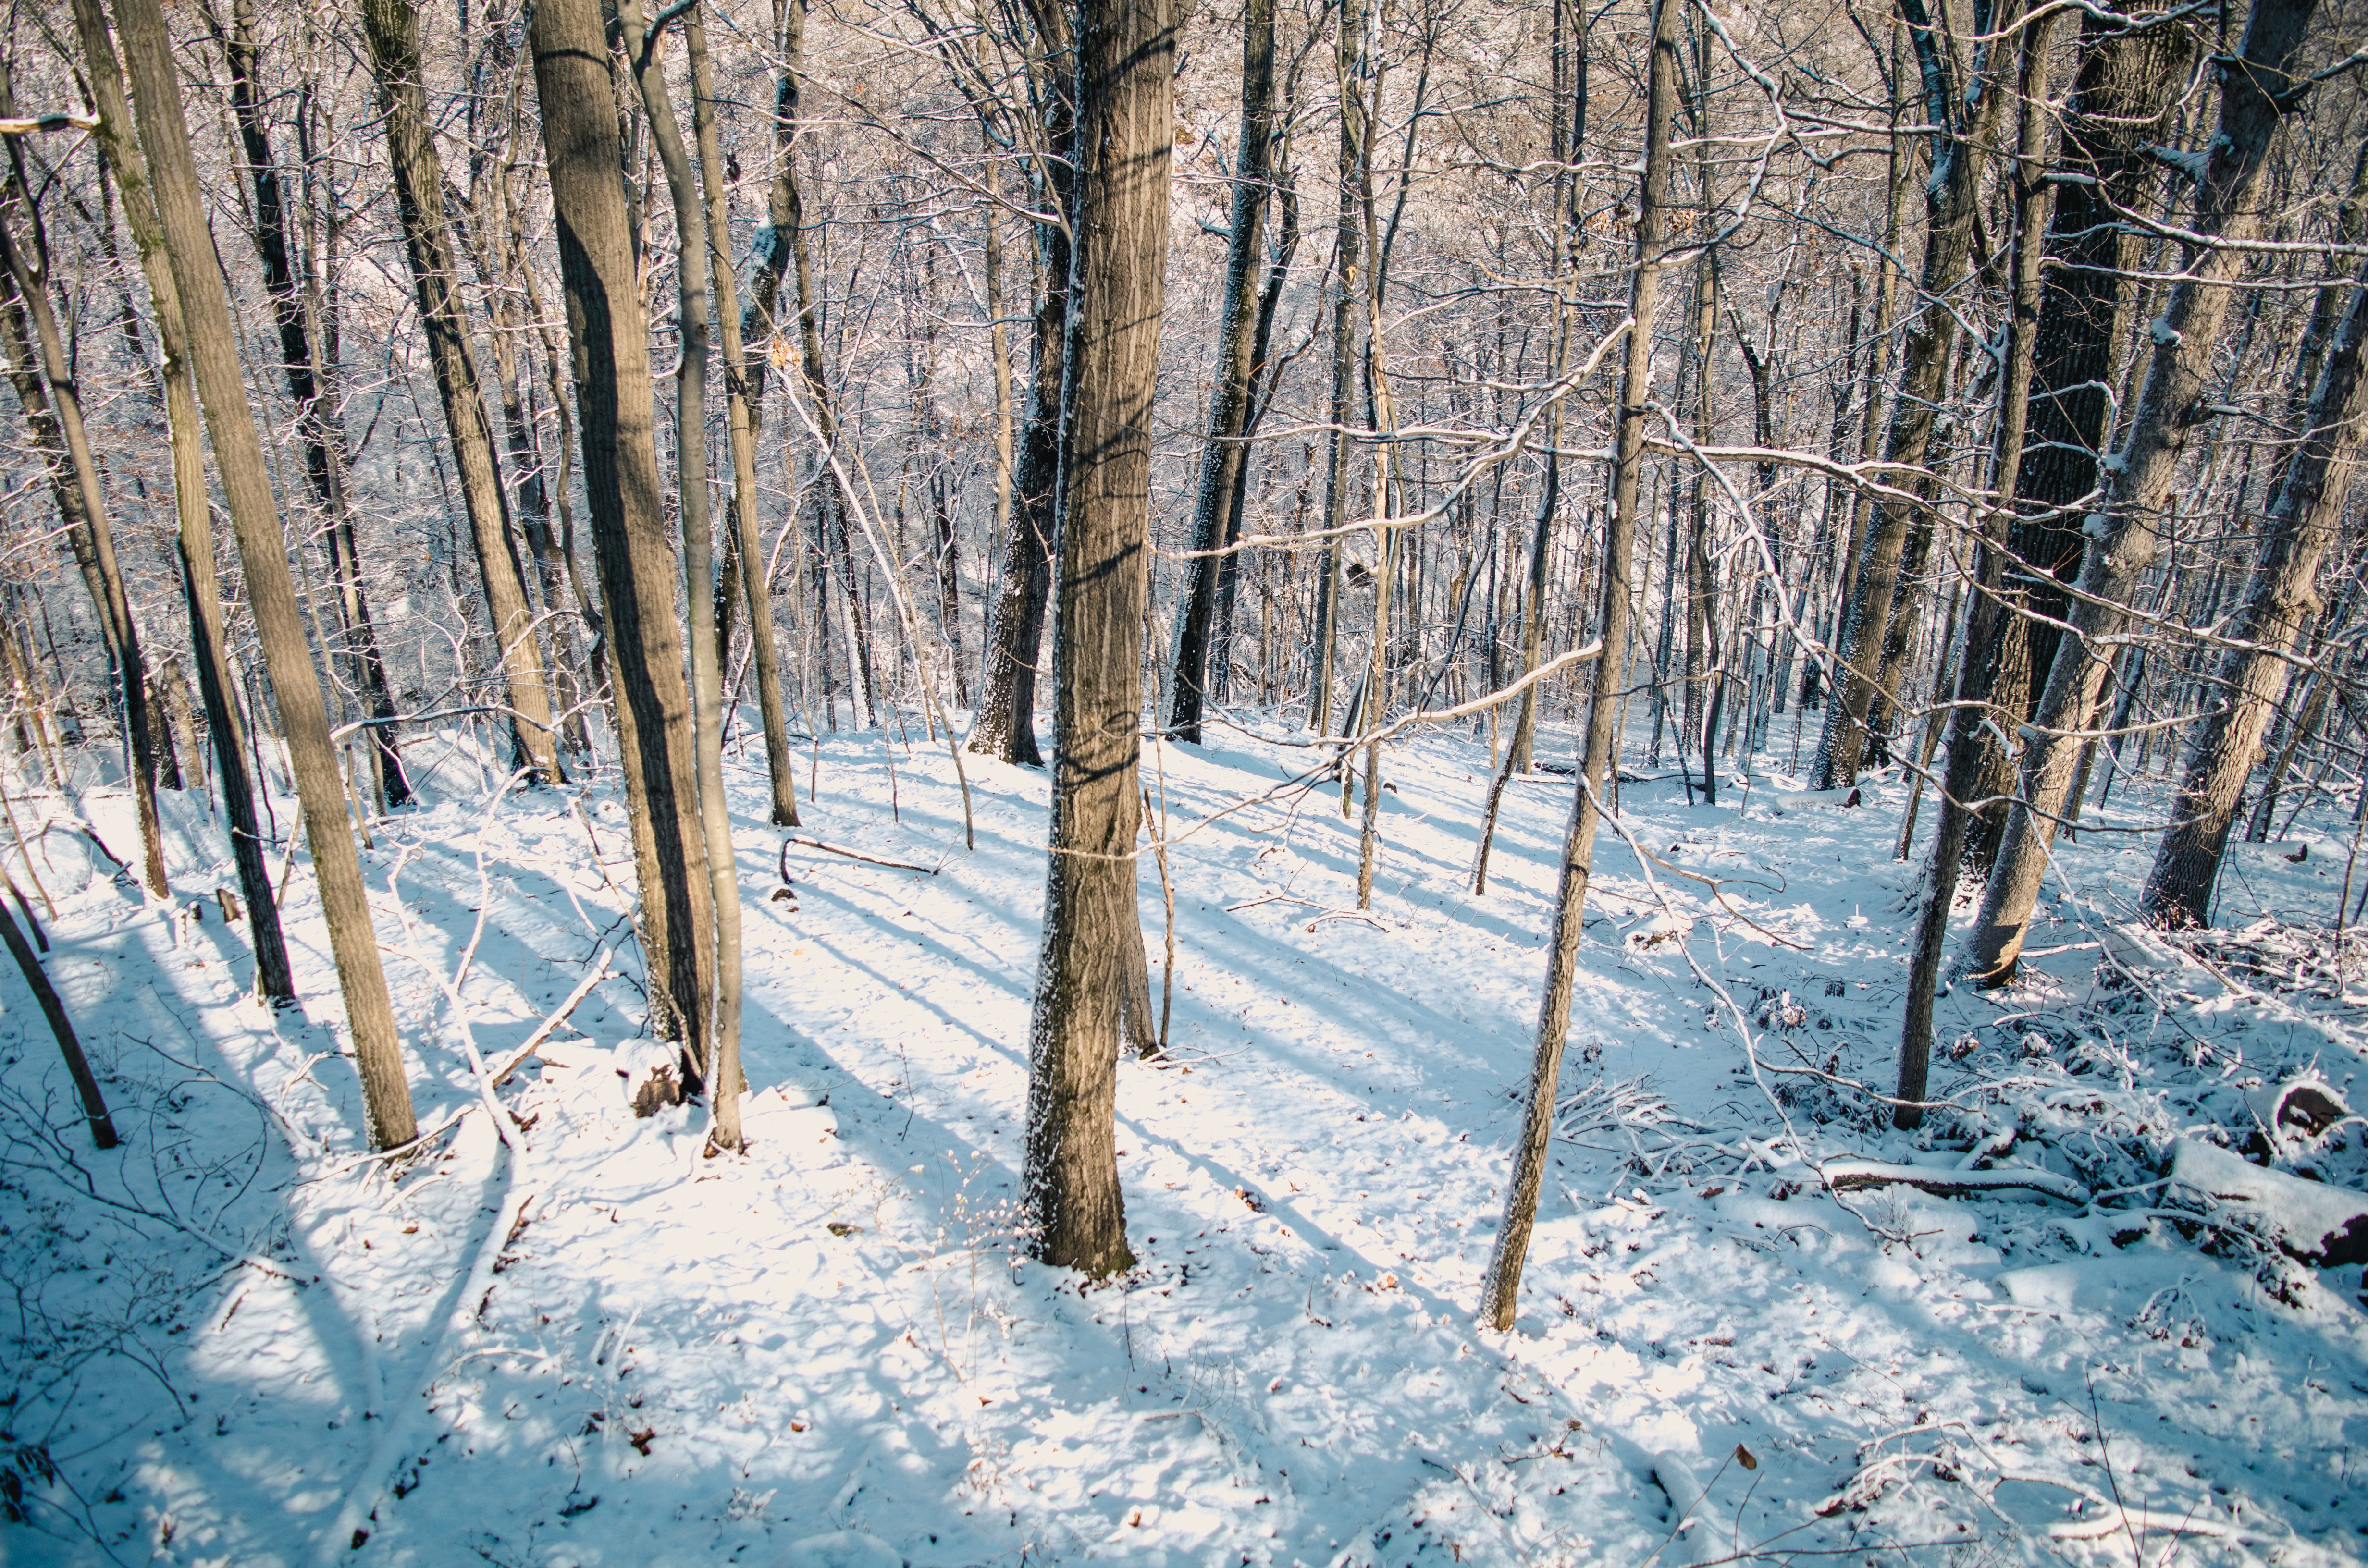 Snow Covered Forest, Cold, Scene, Wood, Winter, HQ Photo